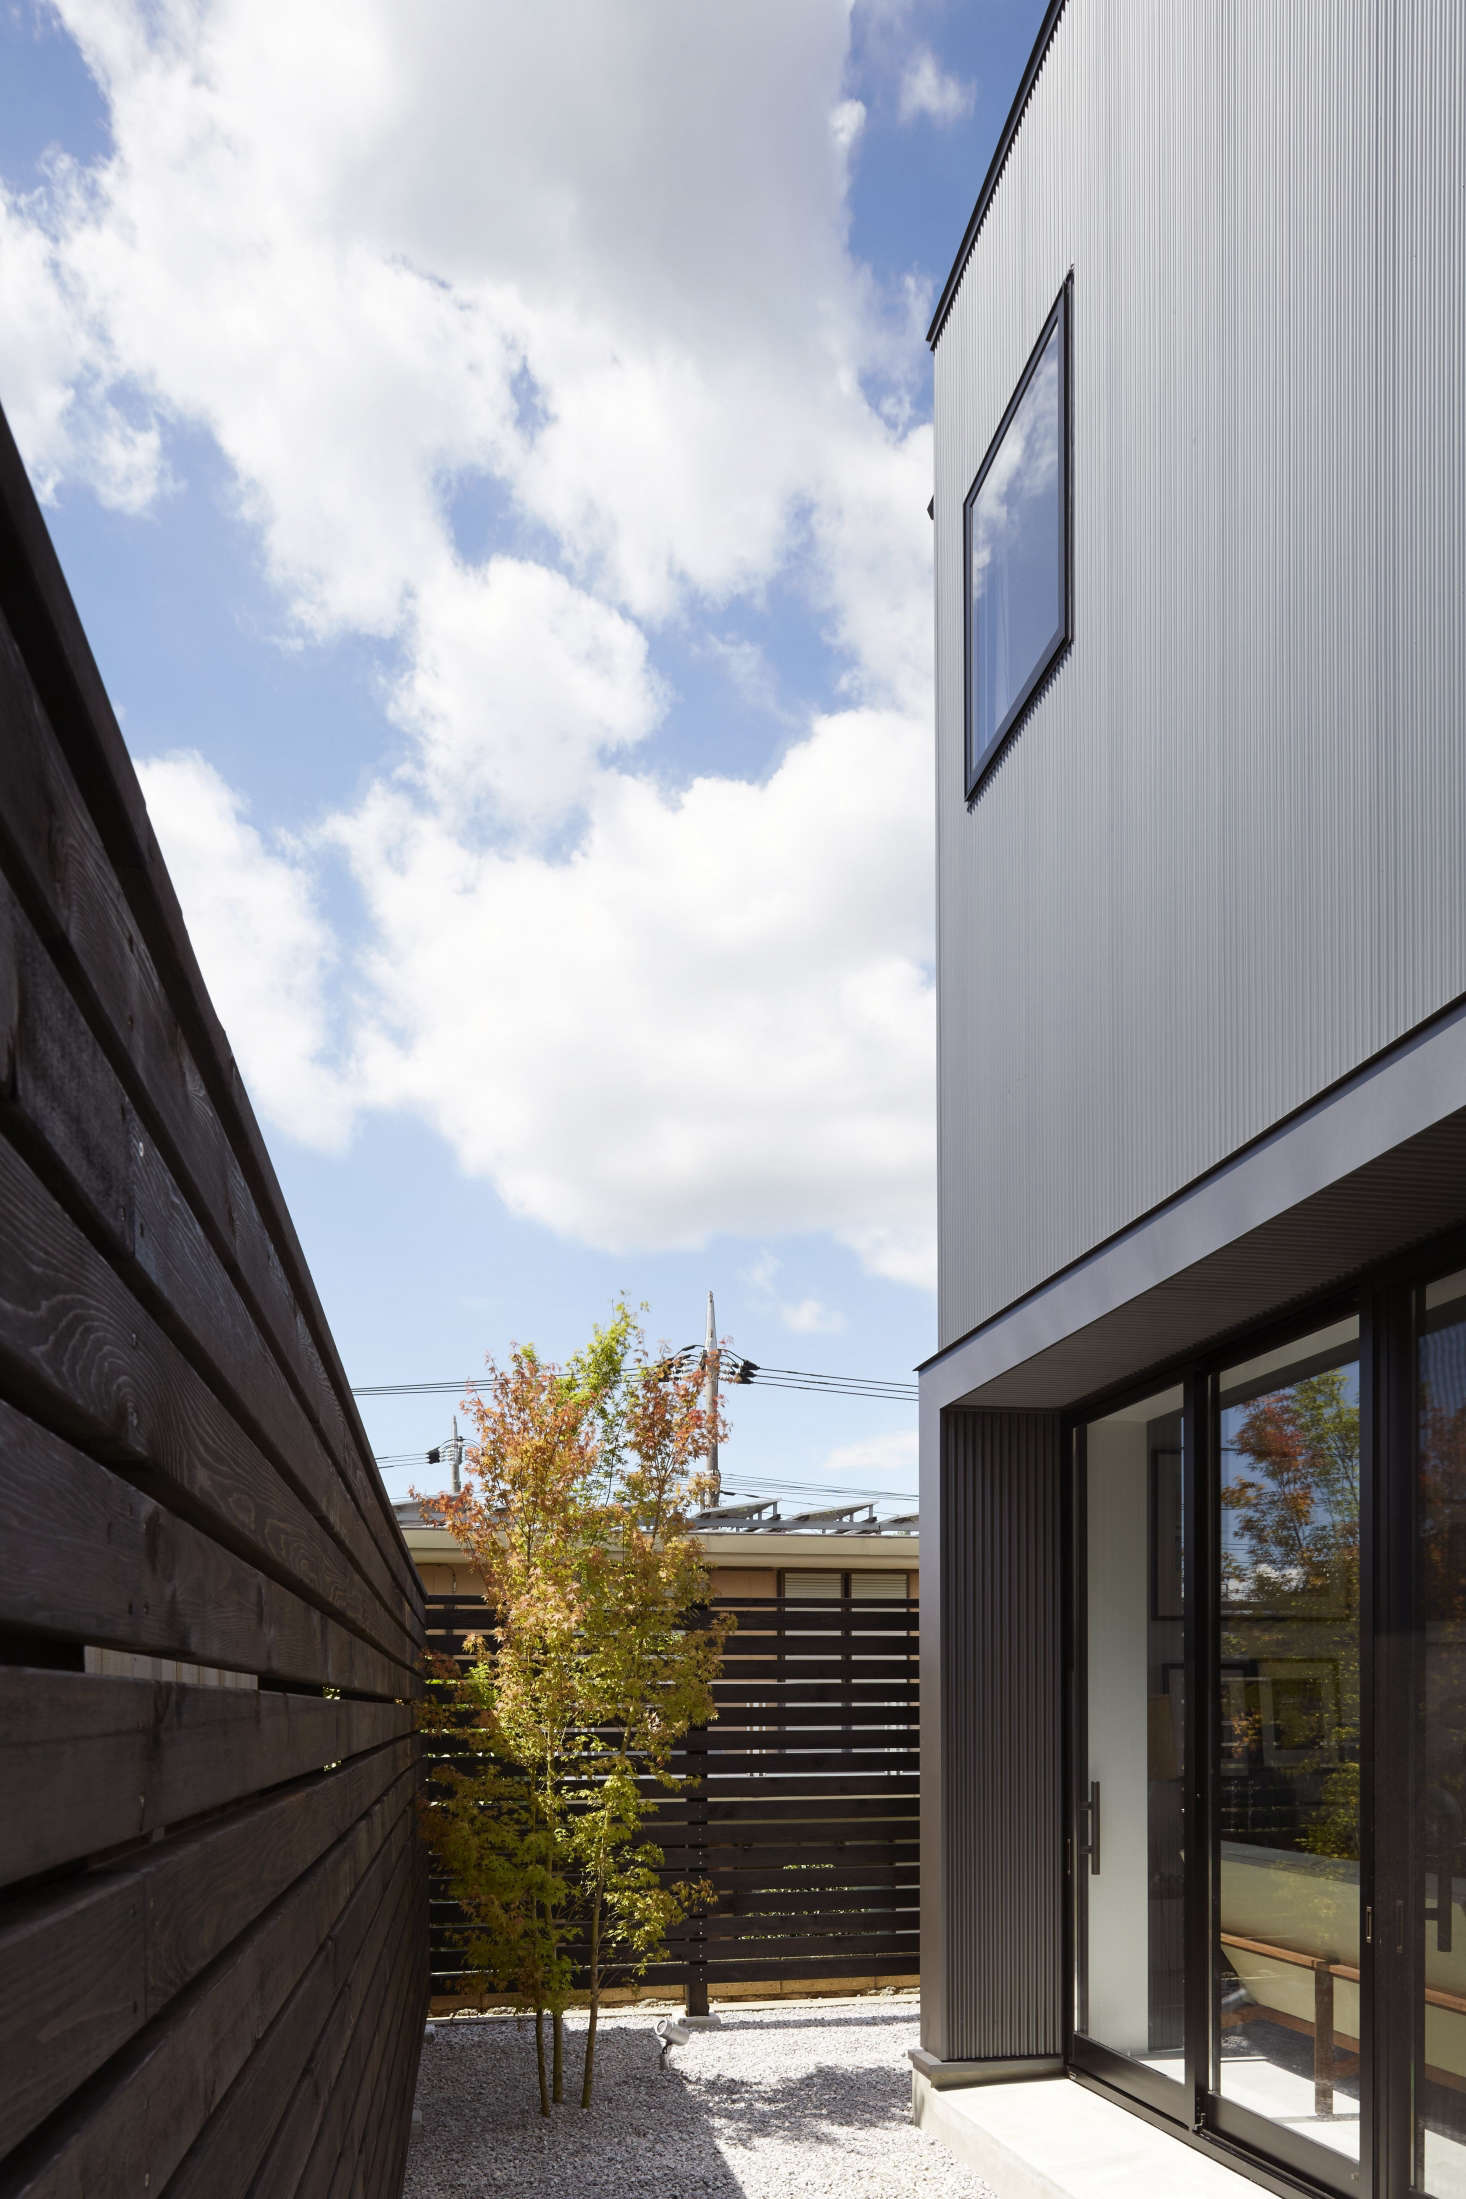 The gravel-lined courtyard serves as a buffer between the house and its next-door neighbor.